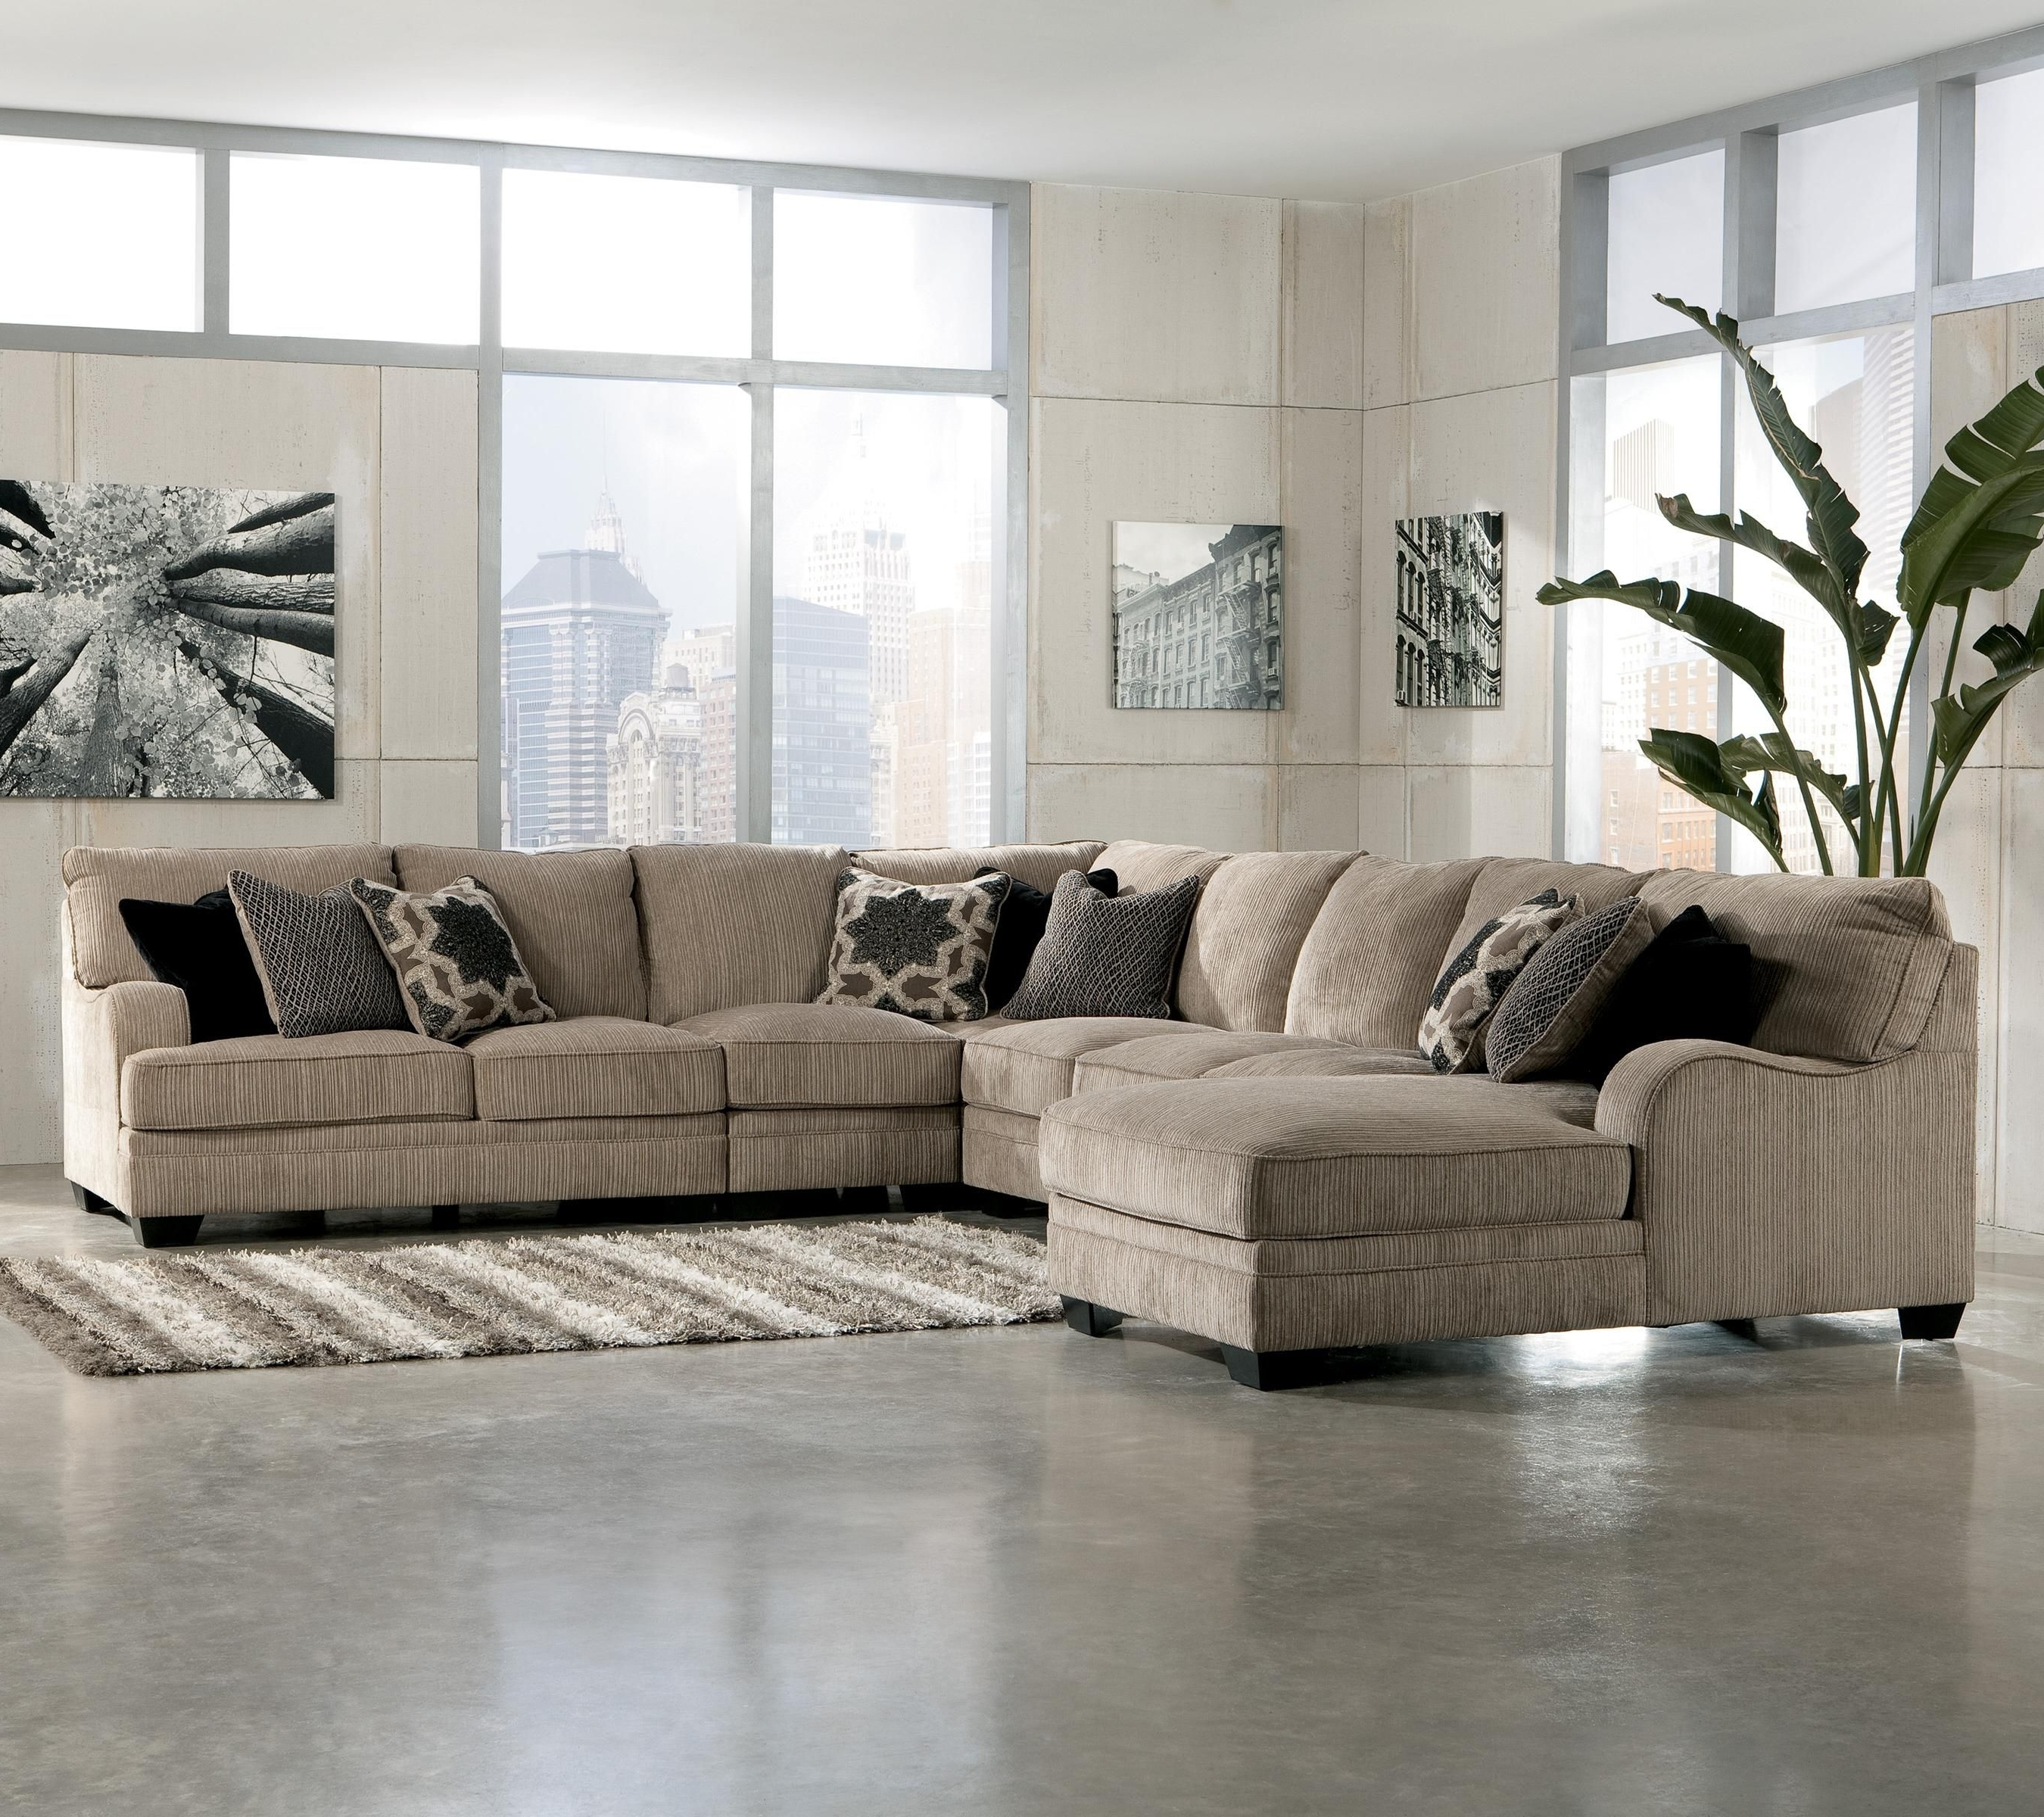 Most Recent Living Room Sectional: Katisha 4 Piece Sectionalashley Throughout Sectional Sofas At Ashley Furniture (View 13 of 15)